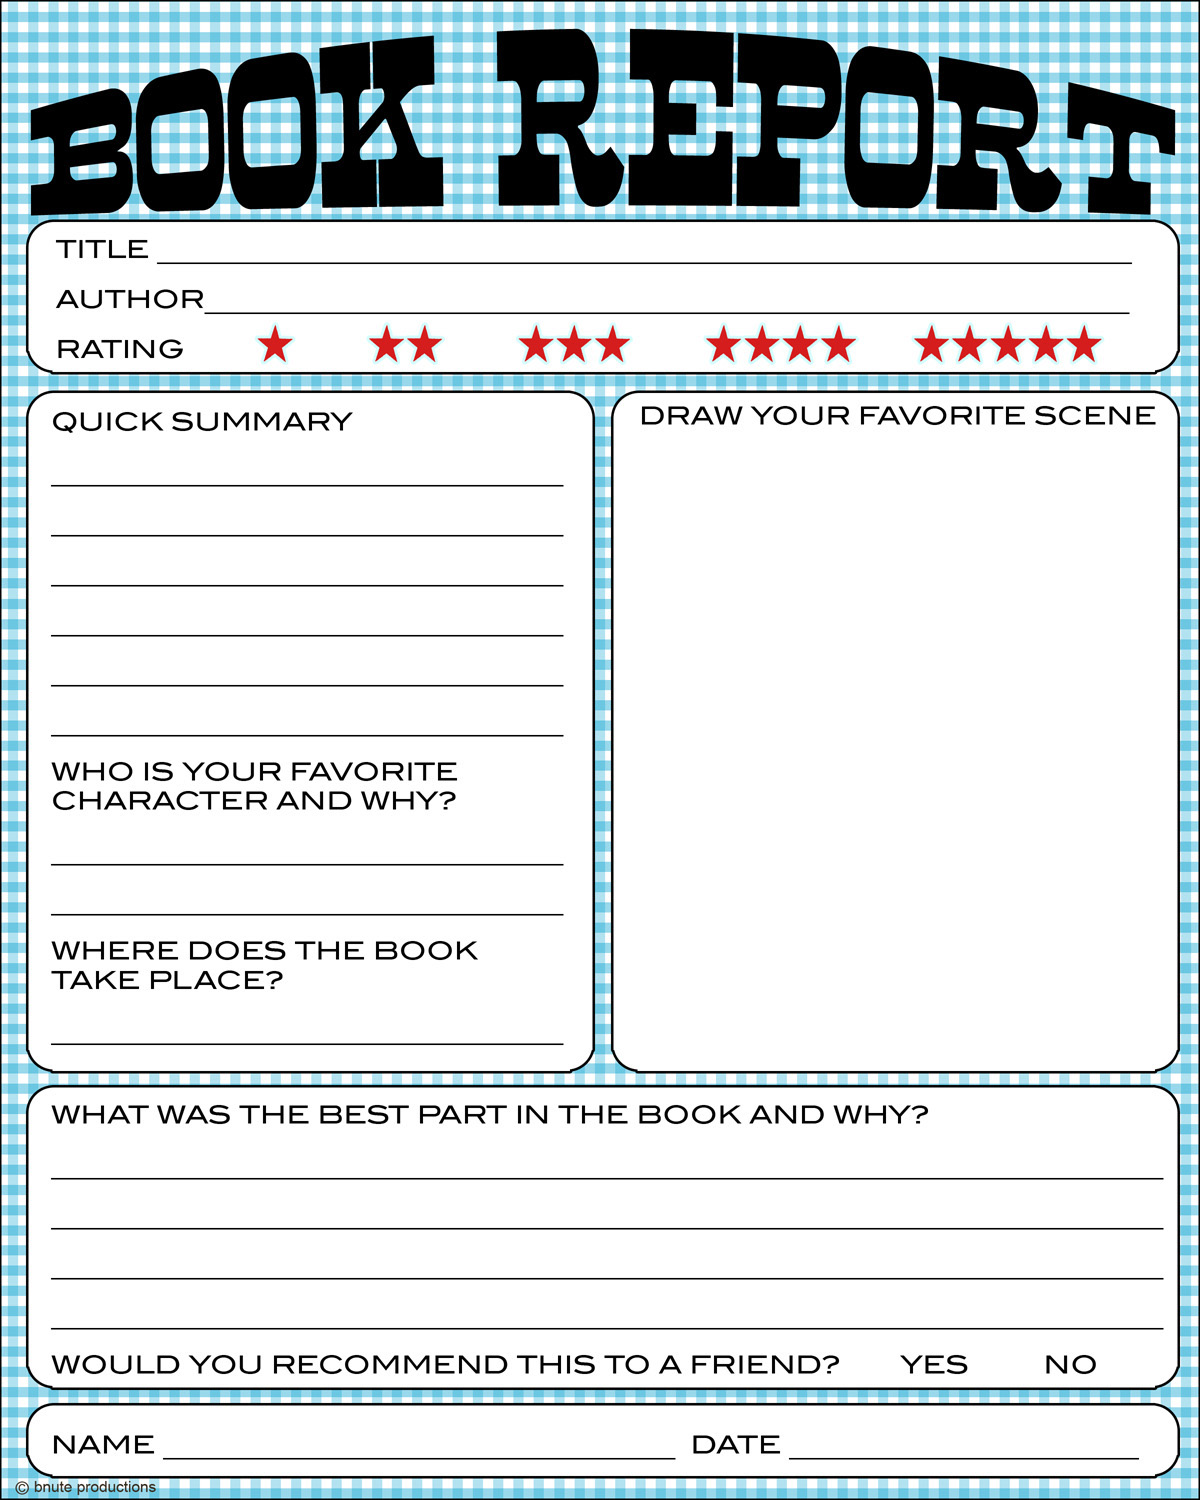 FREE Middle School Printable Book Report Form!